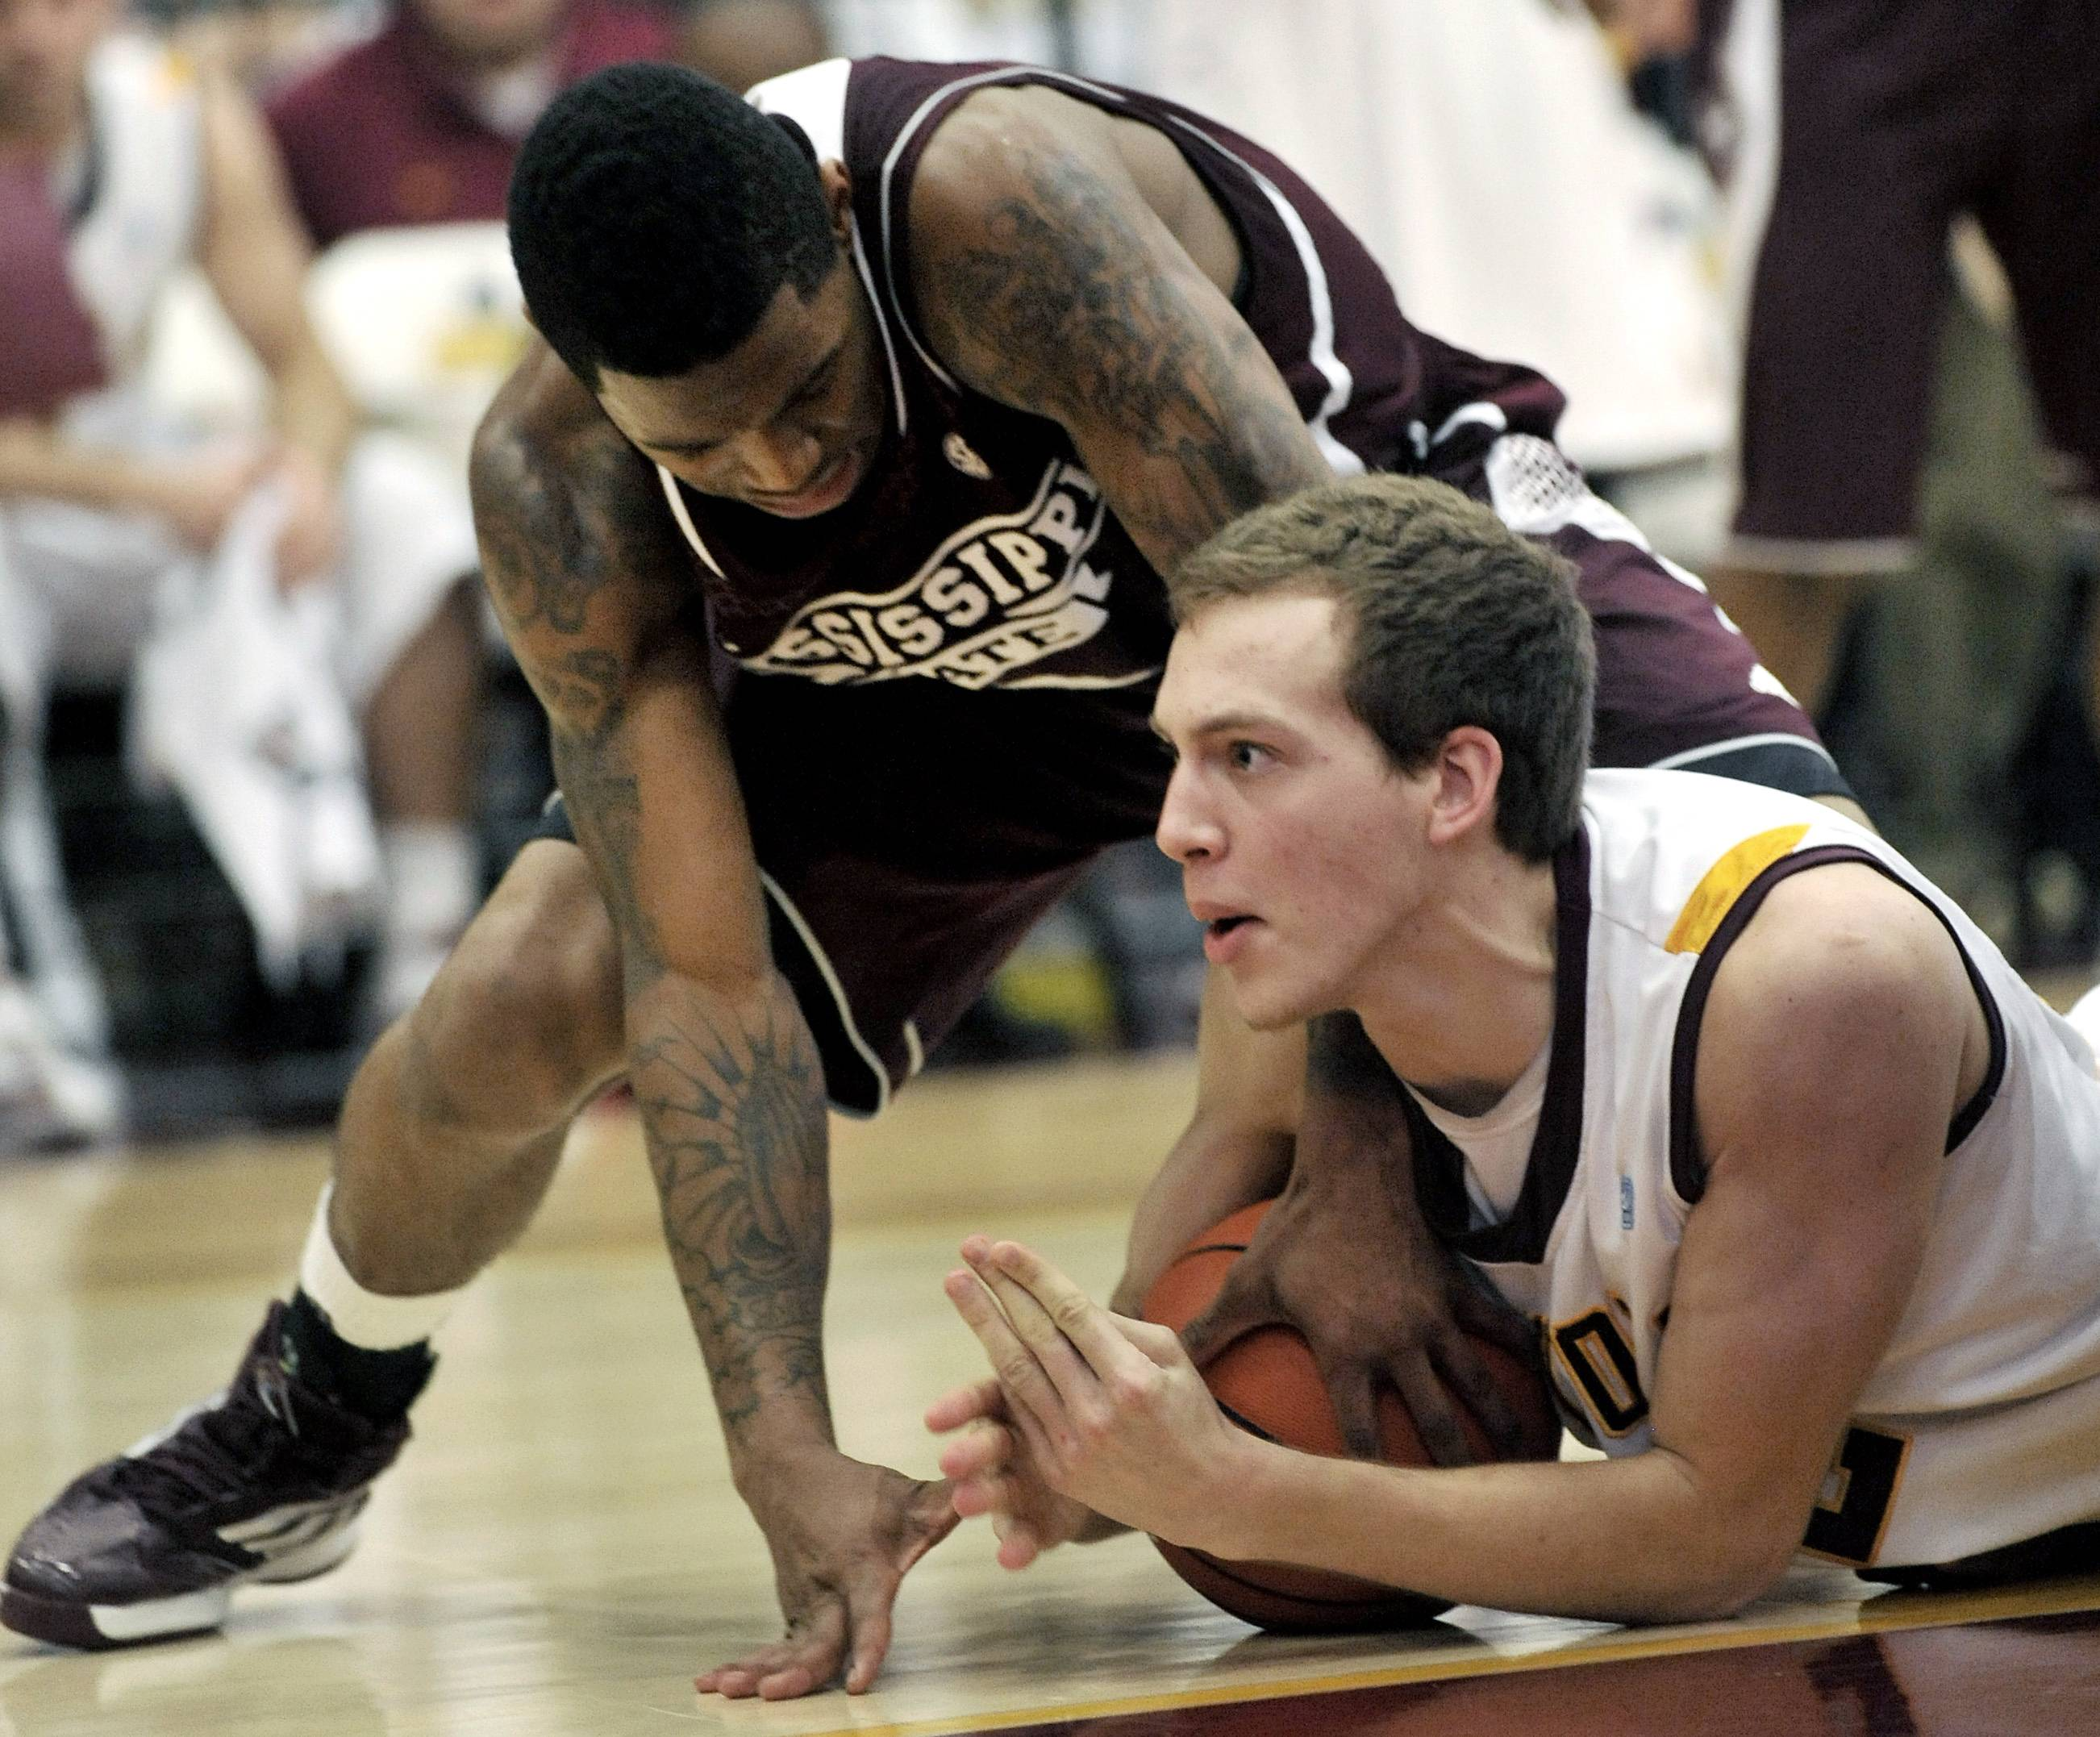 Loyola's Matt O'Leary, right, battles Mississippi State's Trivante Bloodman, left, for a loose ball Saturday during the first half in Chicago. Loyola won 59-51.